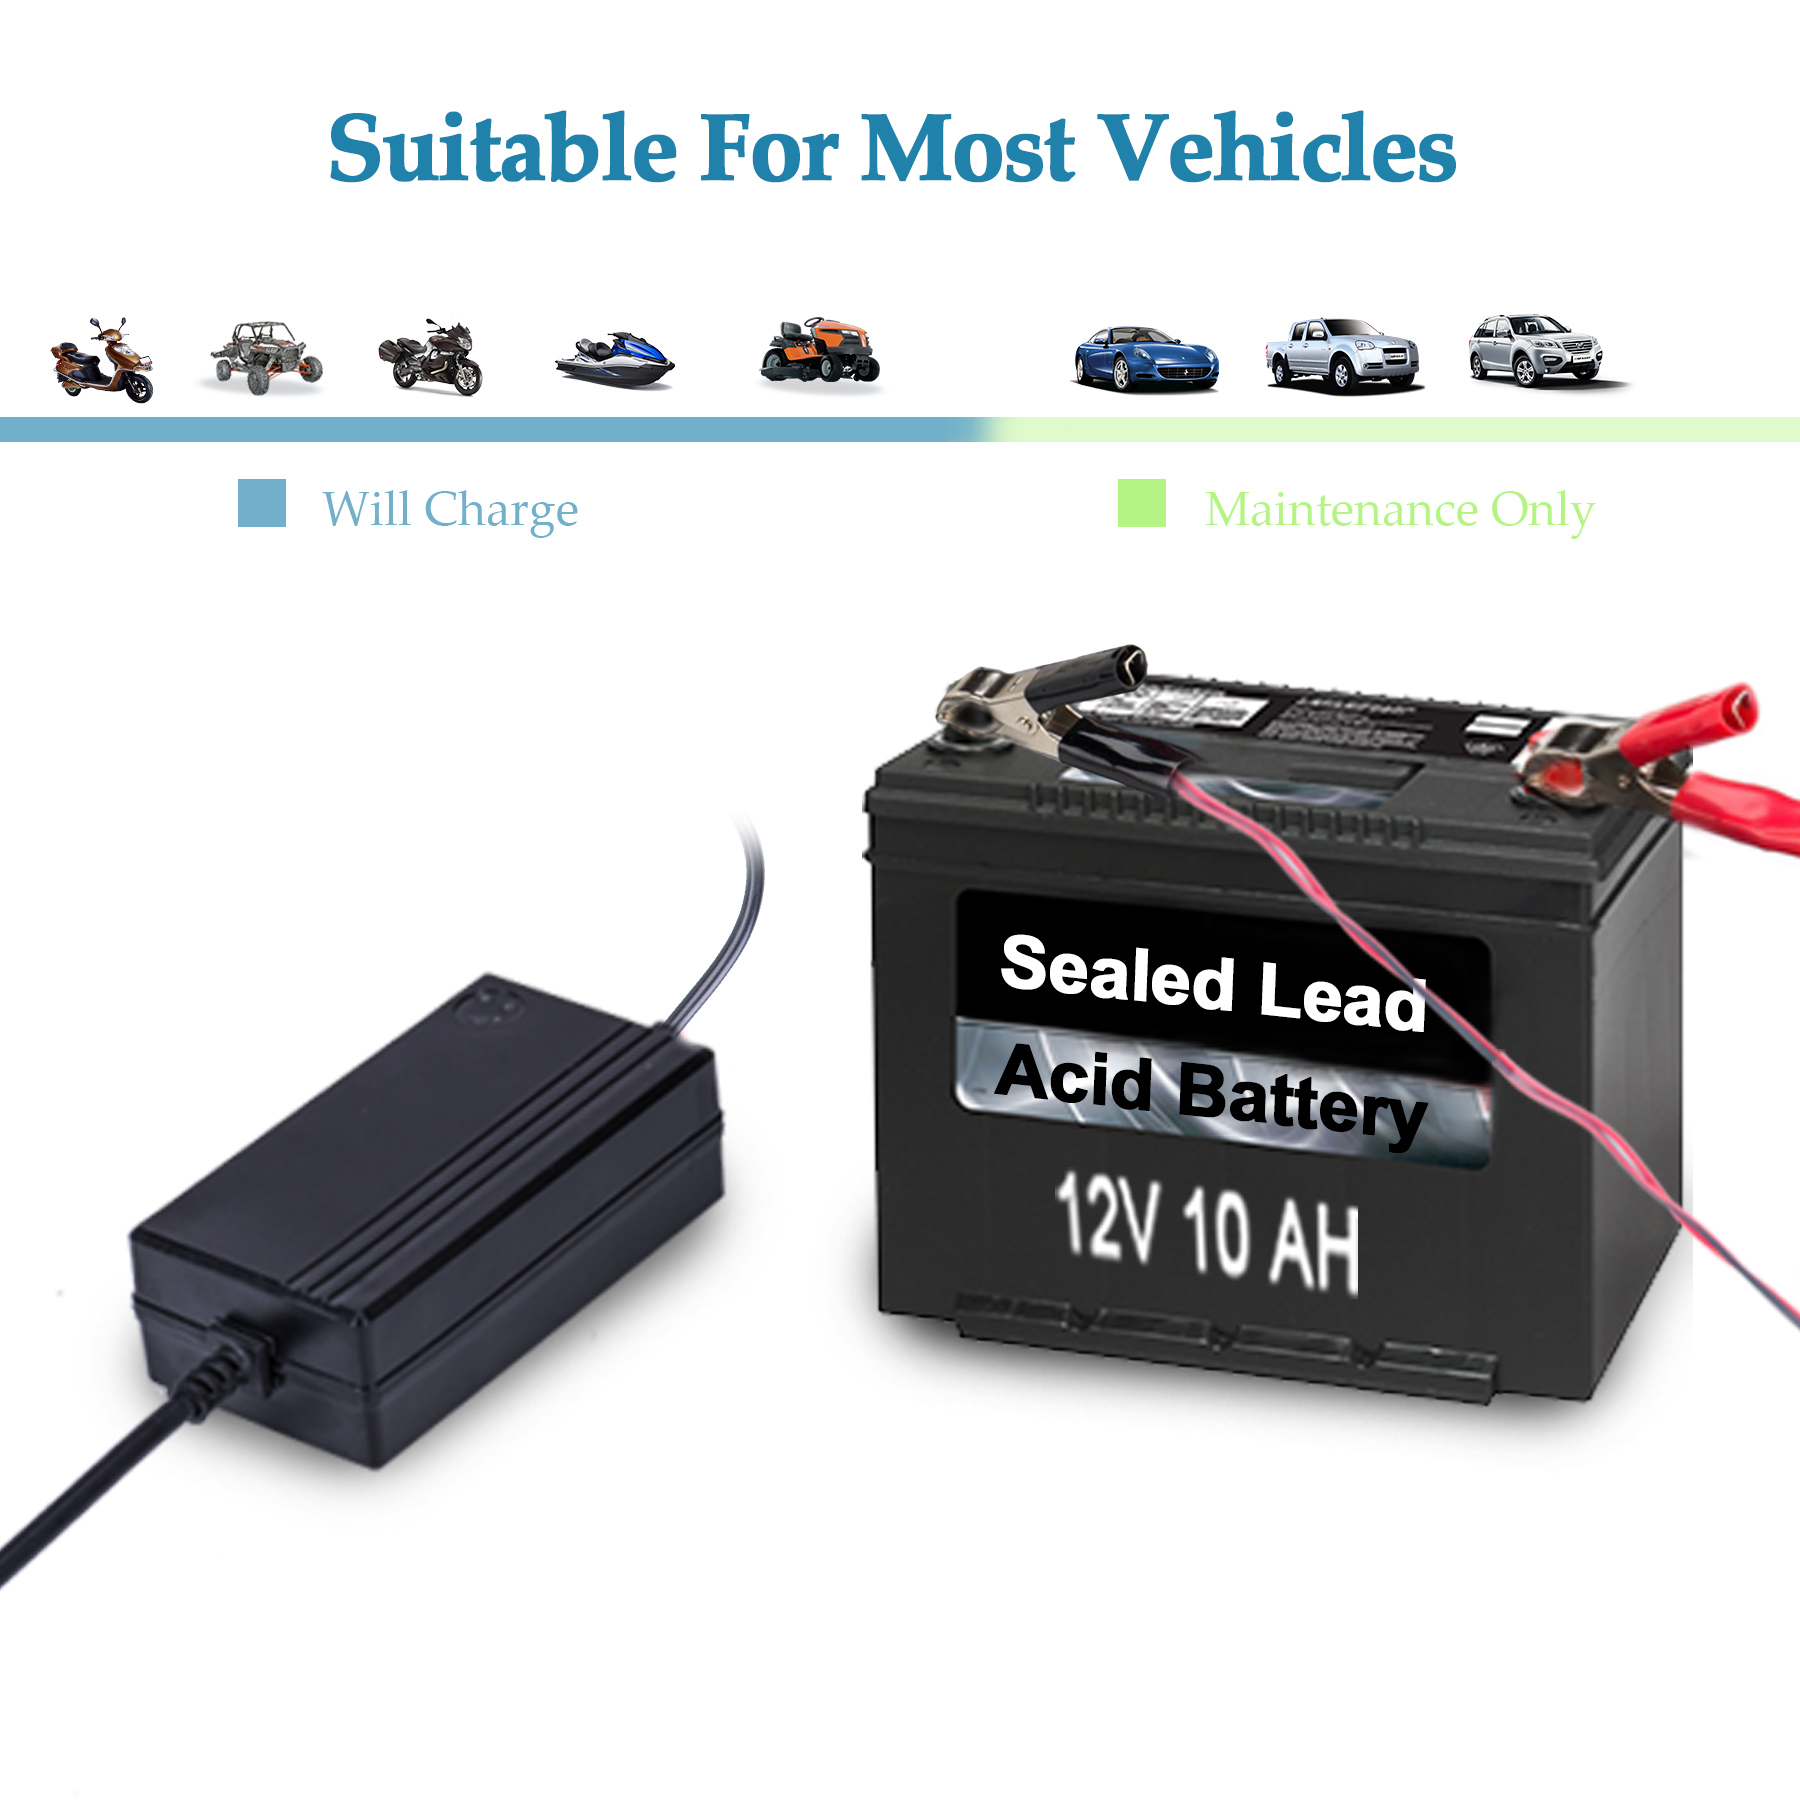 Portable 12v Trickle Charger Battery Maintainer For Tender Simple Nimh Circuit Batterycharger Powersupply Motorcycle Car Boat Atv